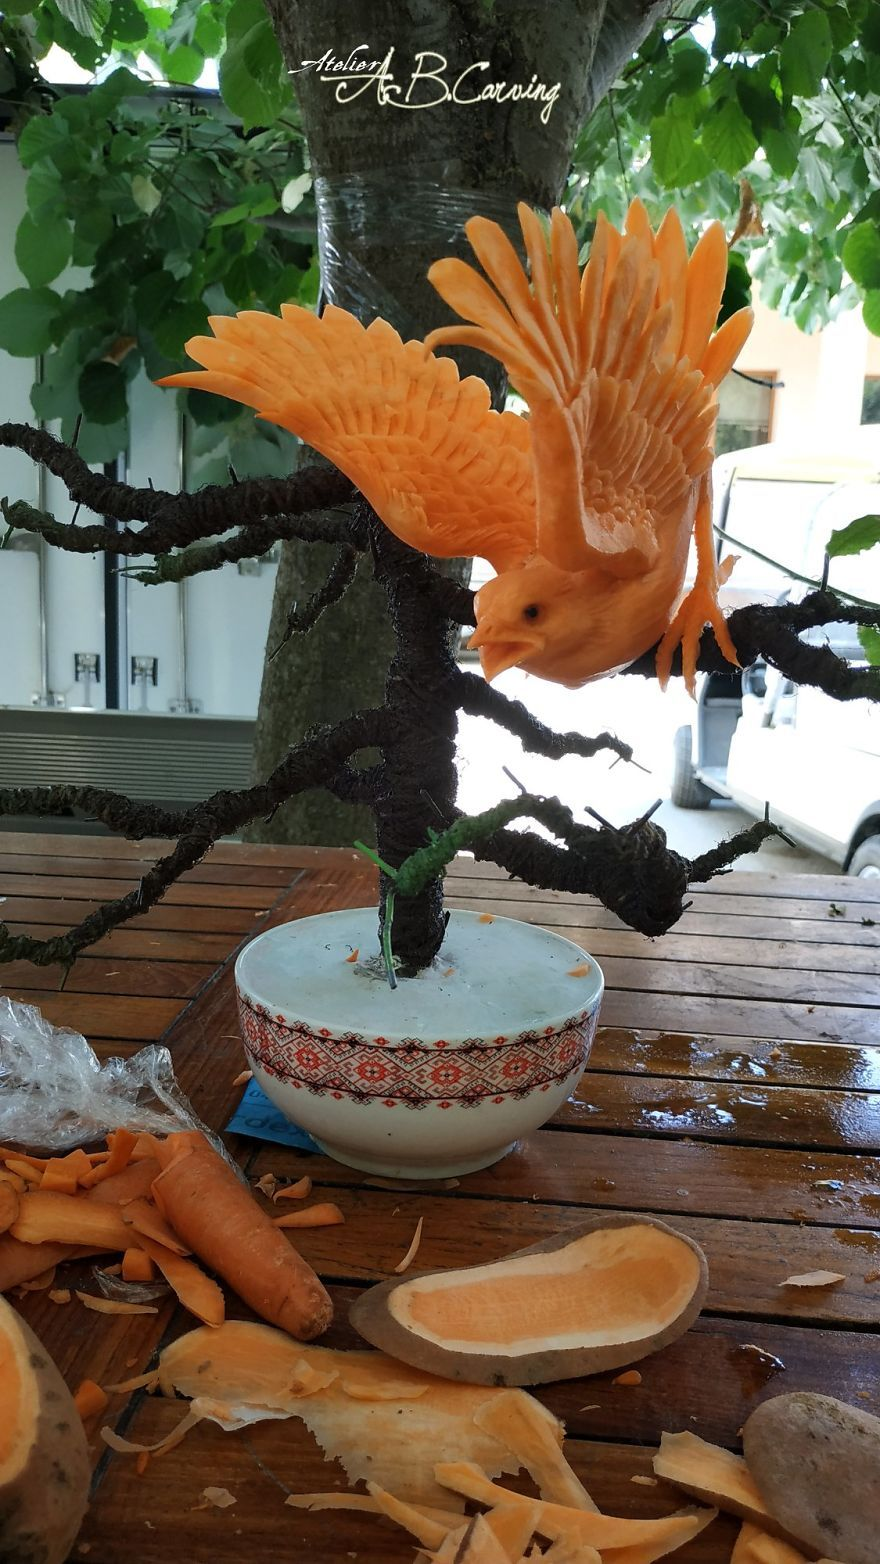 My 26 Alternative Halloween Pumpkins That Don't Necessarily Need To Be Scary (New Pics)